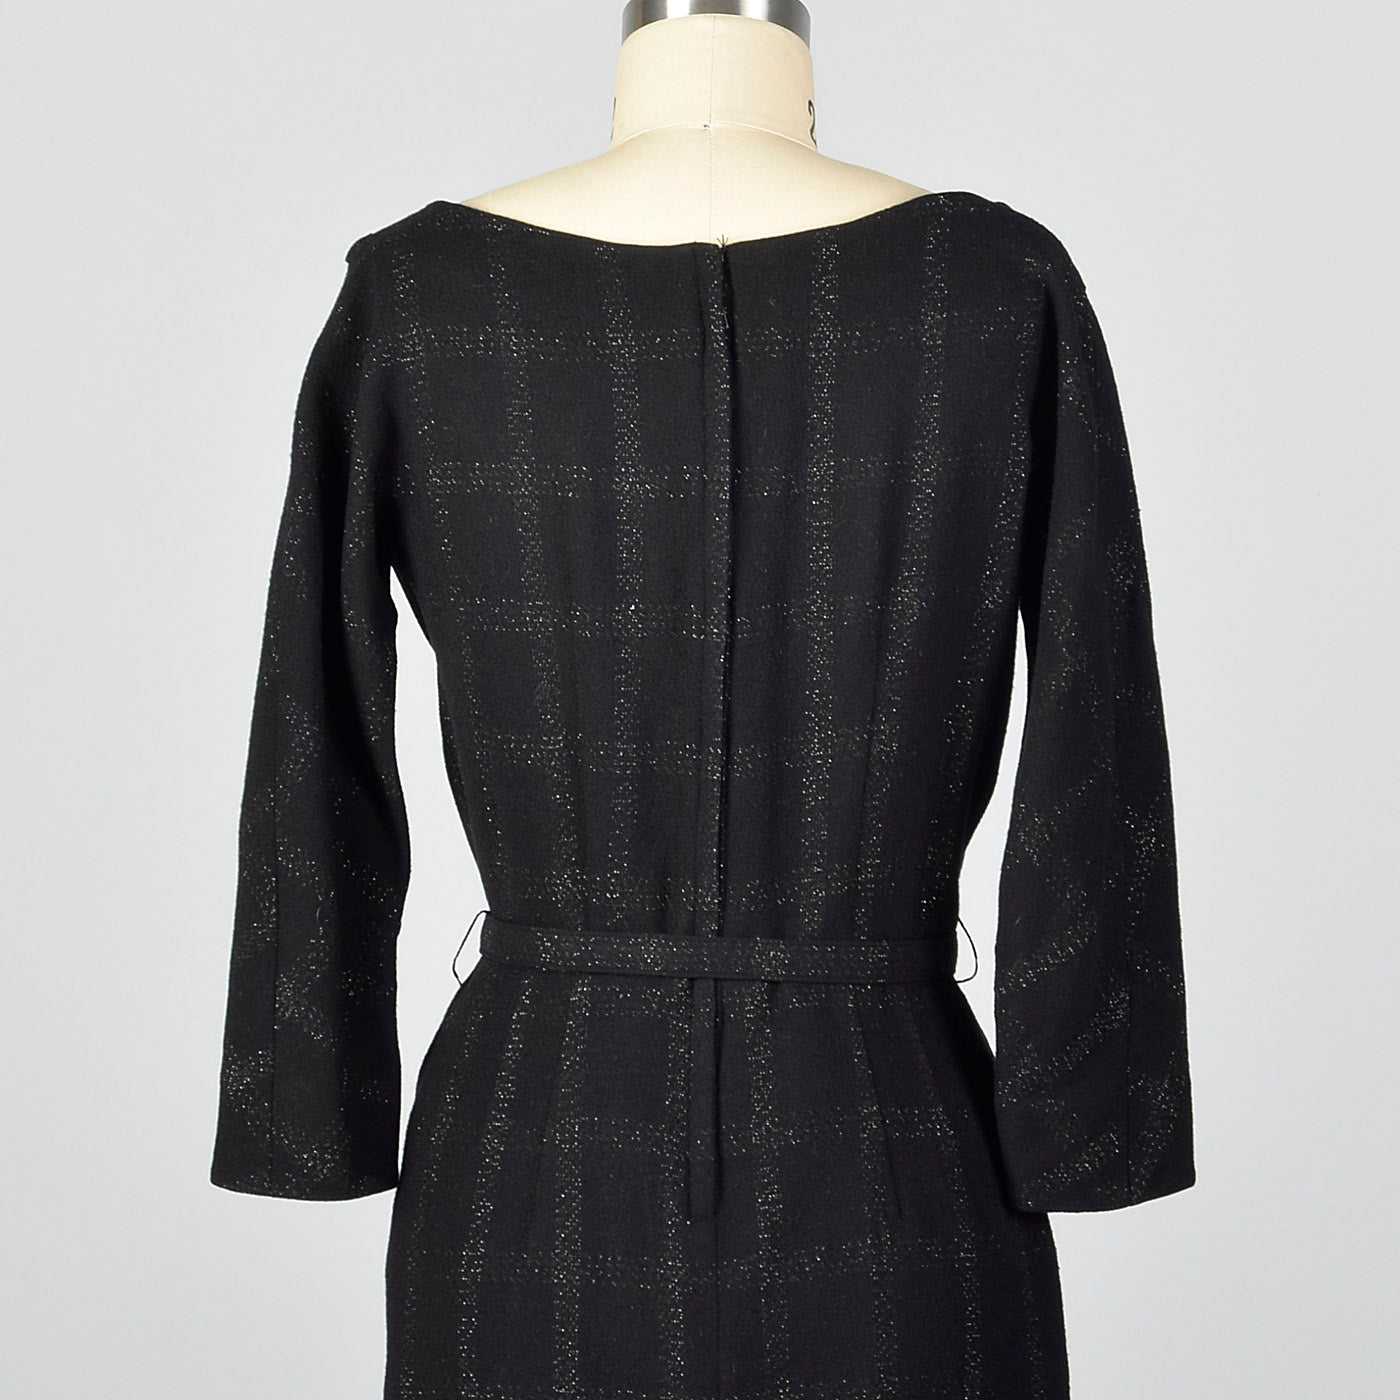 1950s Black Wool Dress with Silver Metallic Plaid